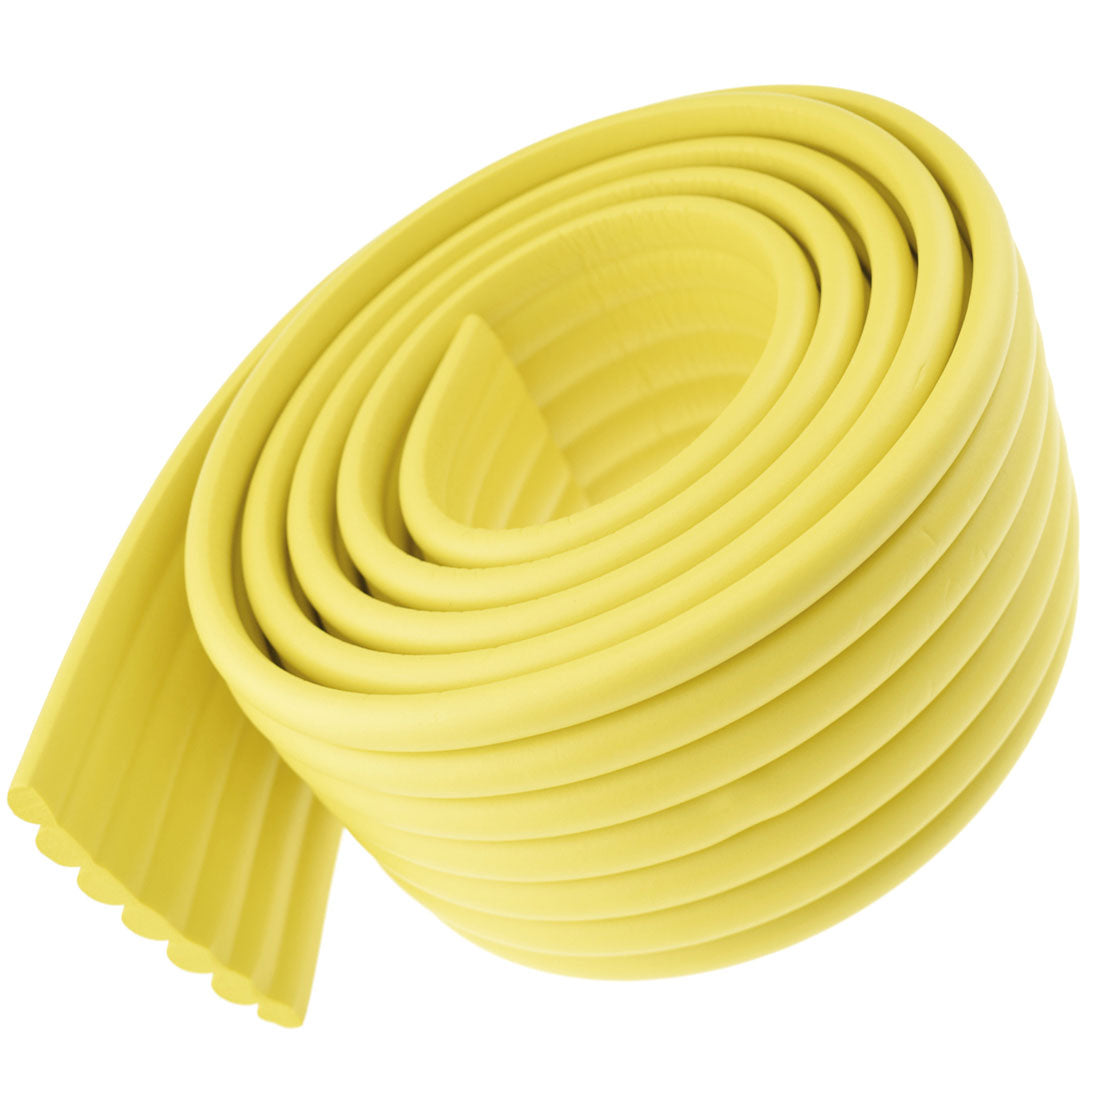 1 Roll Yellow Multi-Purpose Edge Protectors 78.7 inches (2 meters)